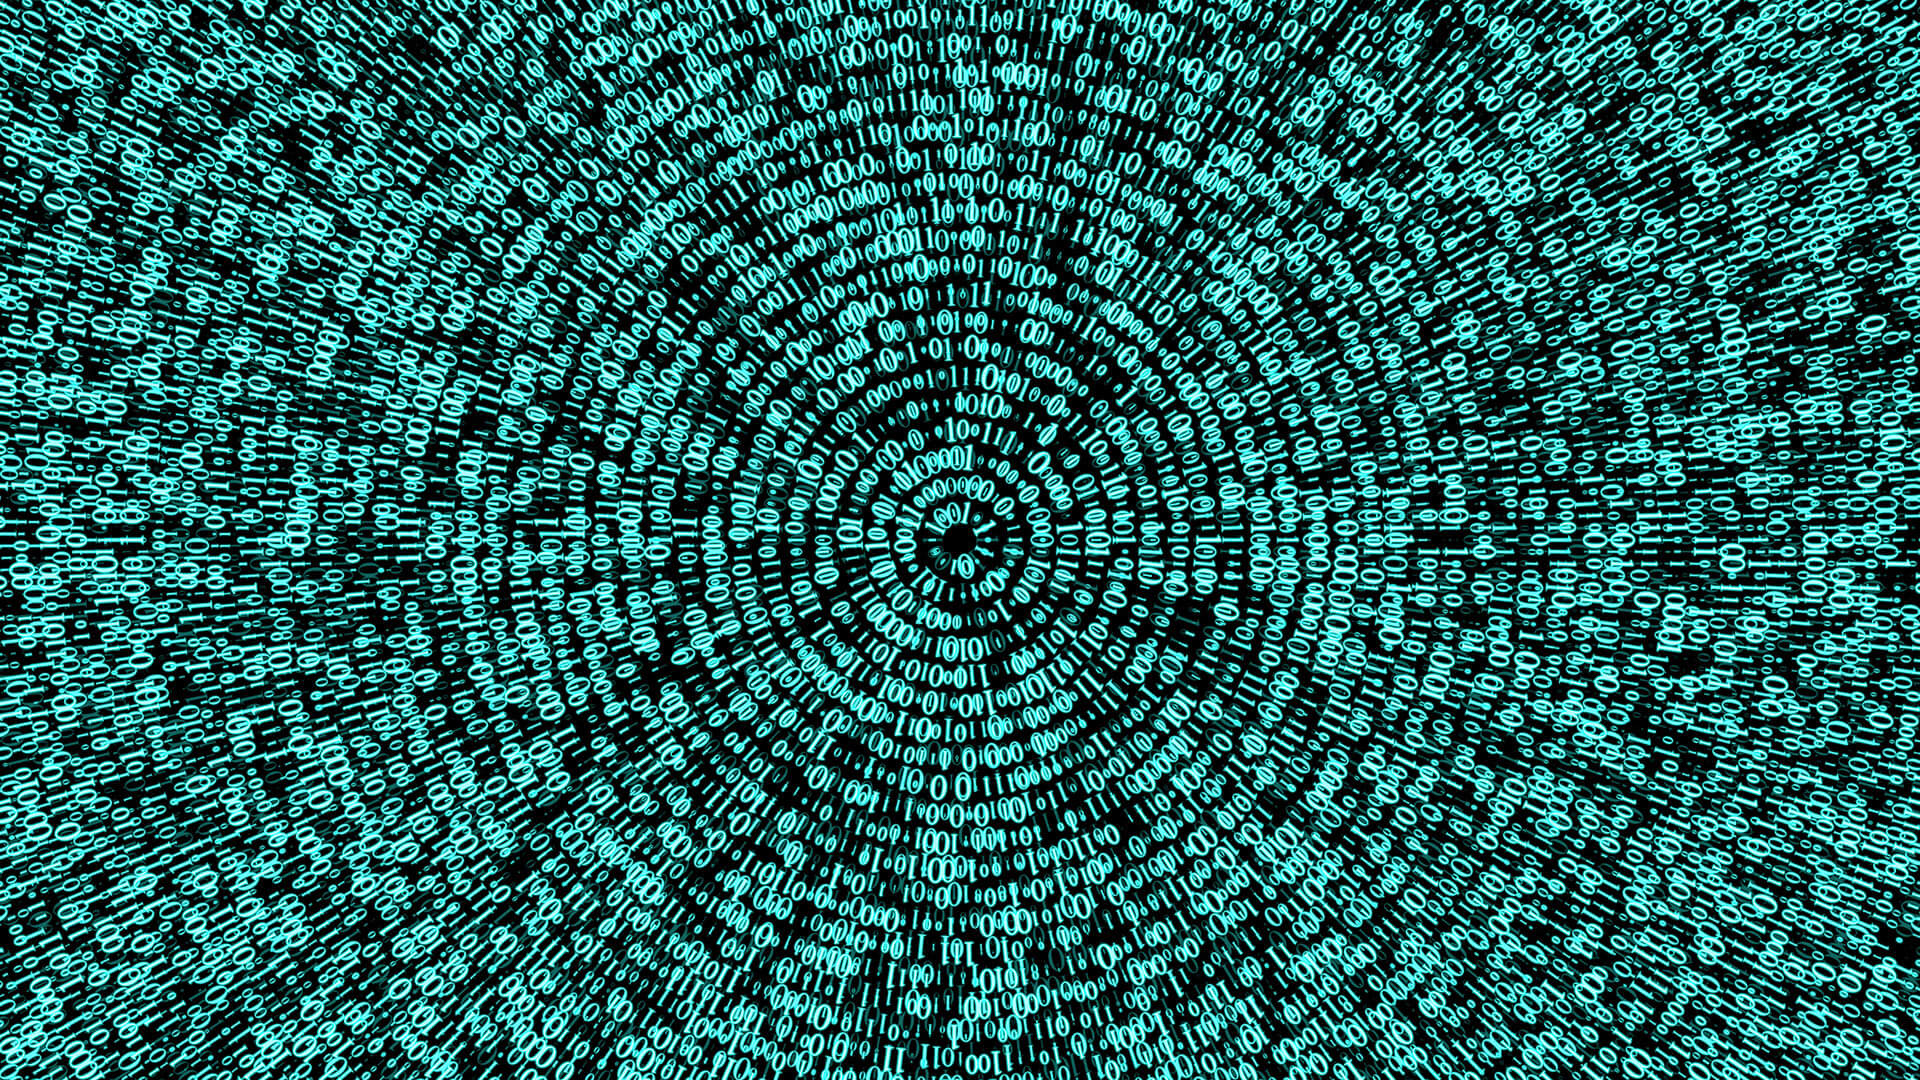 Data ownership is shifting so enterprises are stepping up their tech game